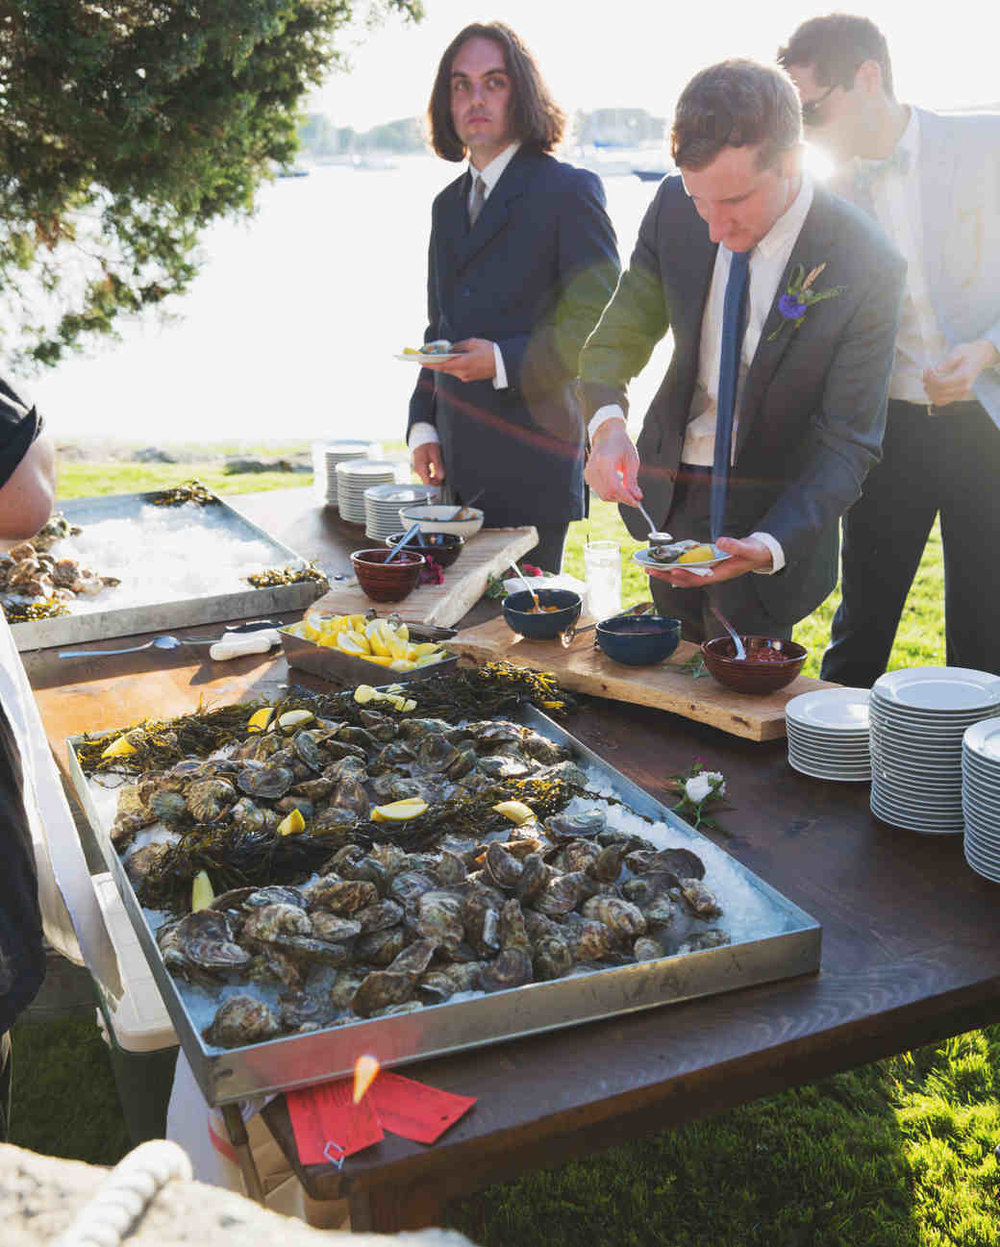 lilly-carter-wedding-oysters-00467-s112037-0715_vert.jpg